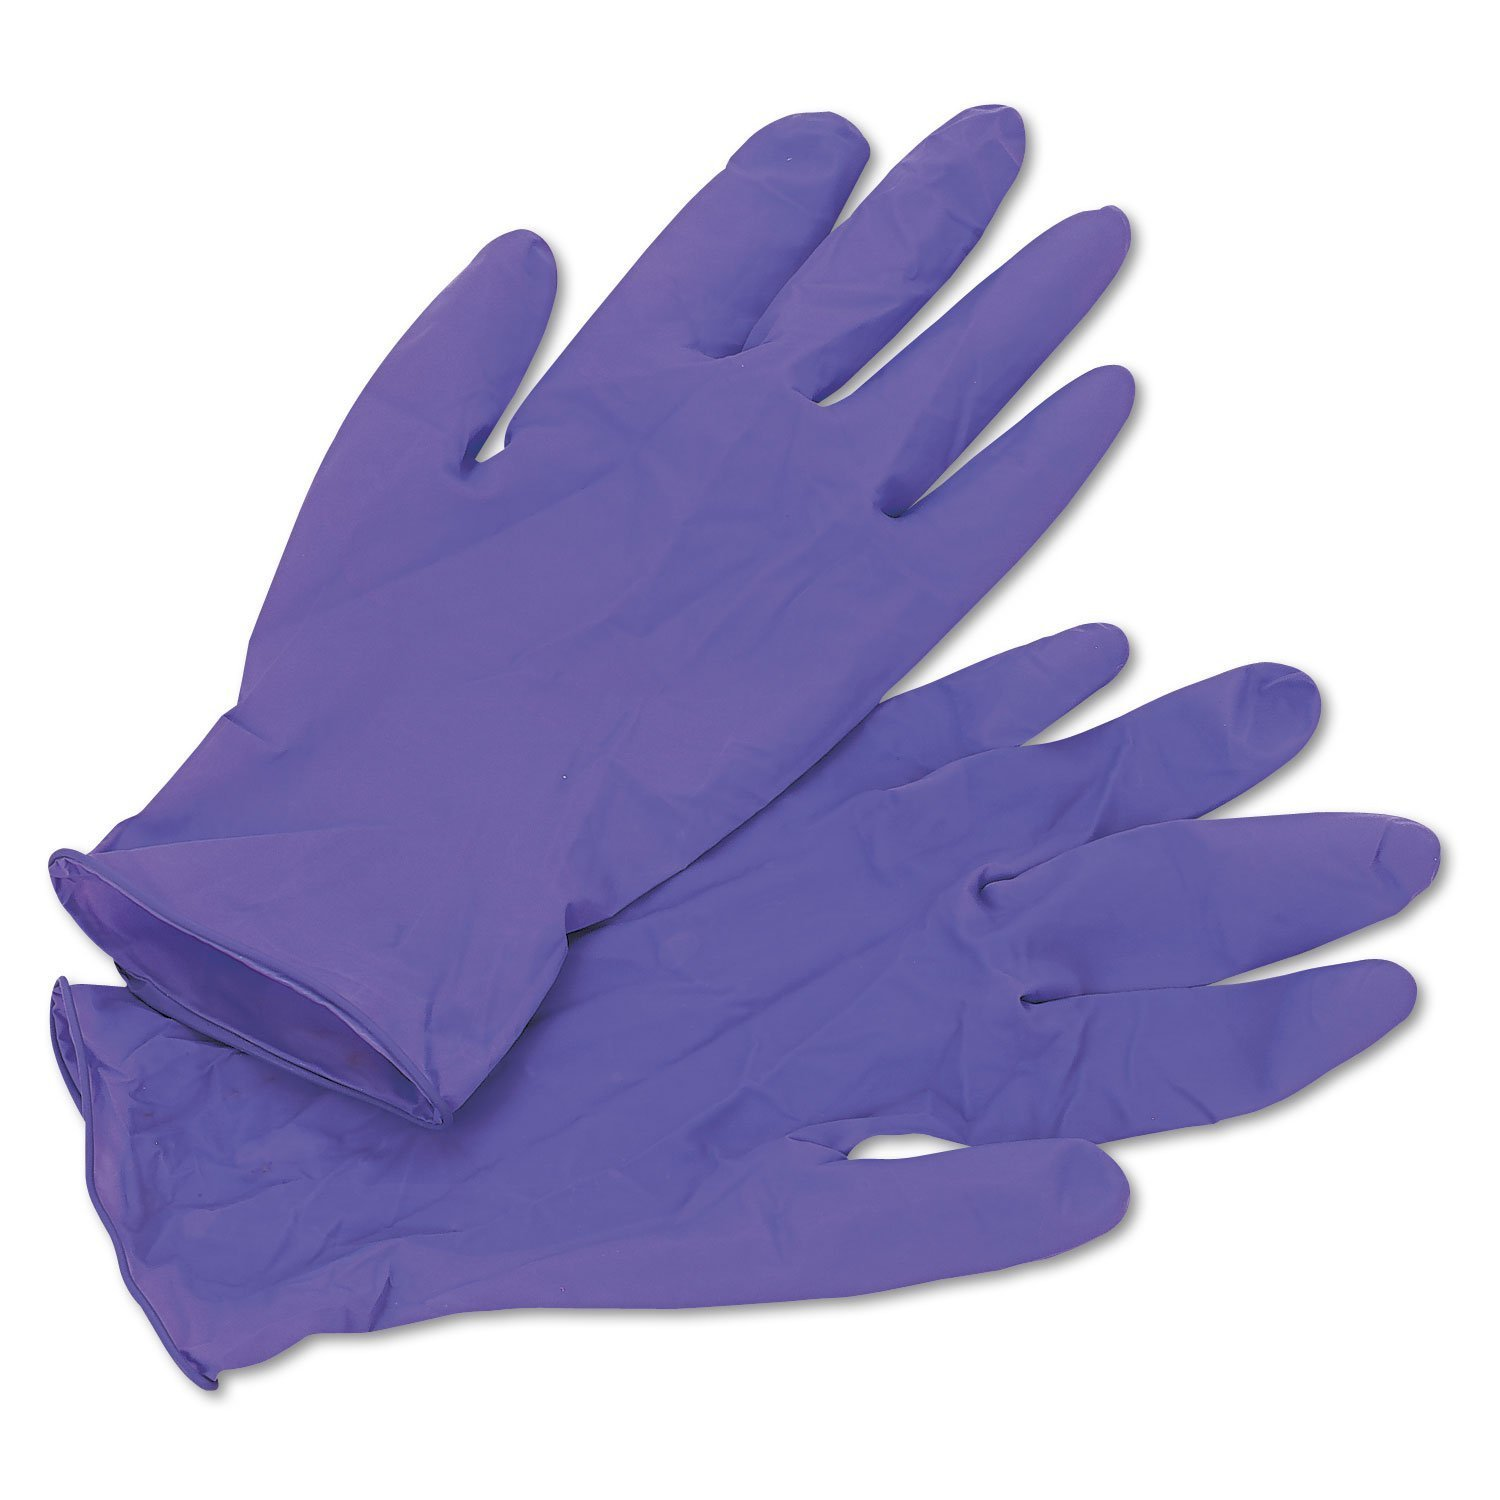 2000 Case, NITRILE EXAM, Medical Grade, Powder Free, Latex Rubber Free, Disposable Gloves